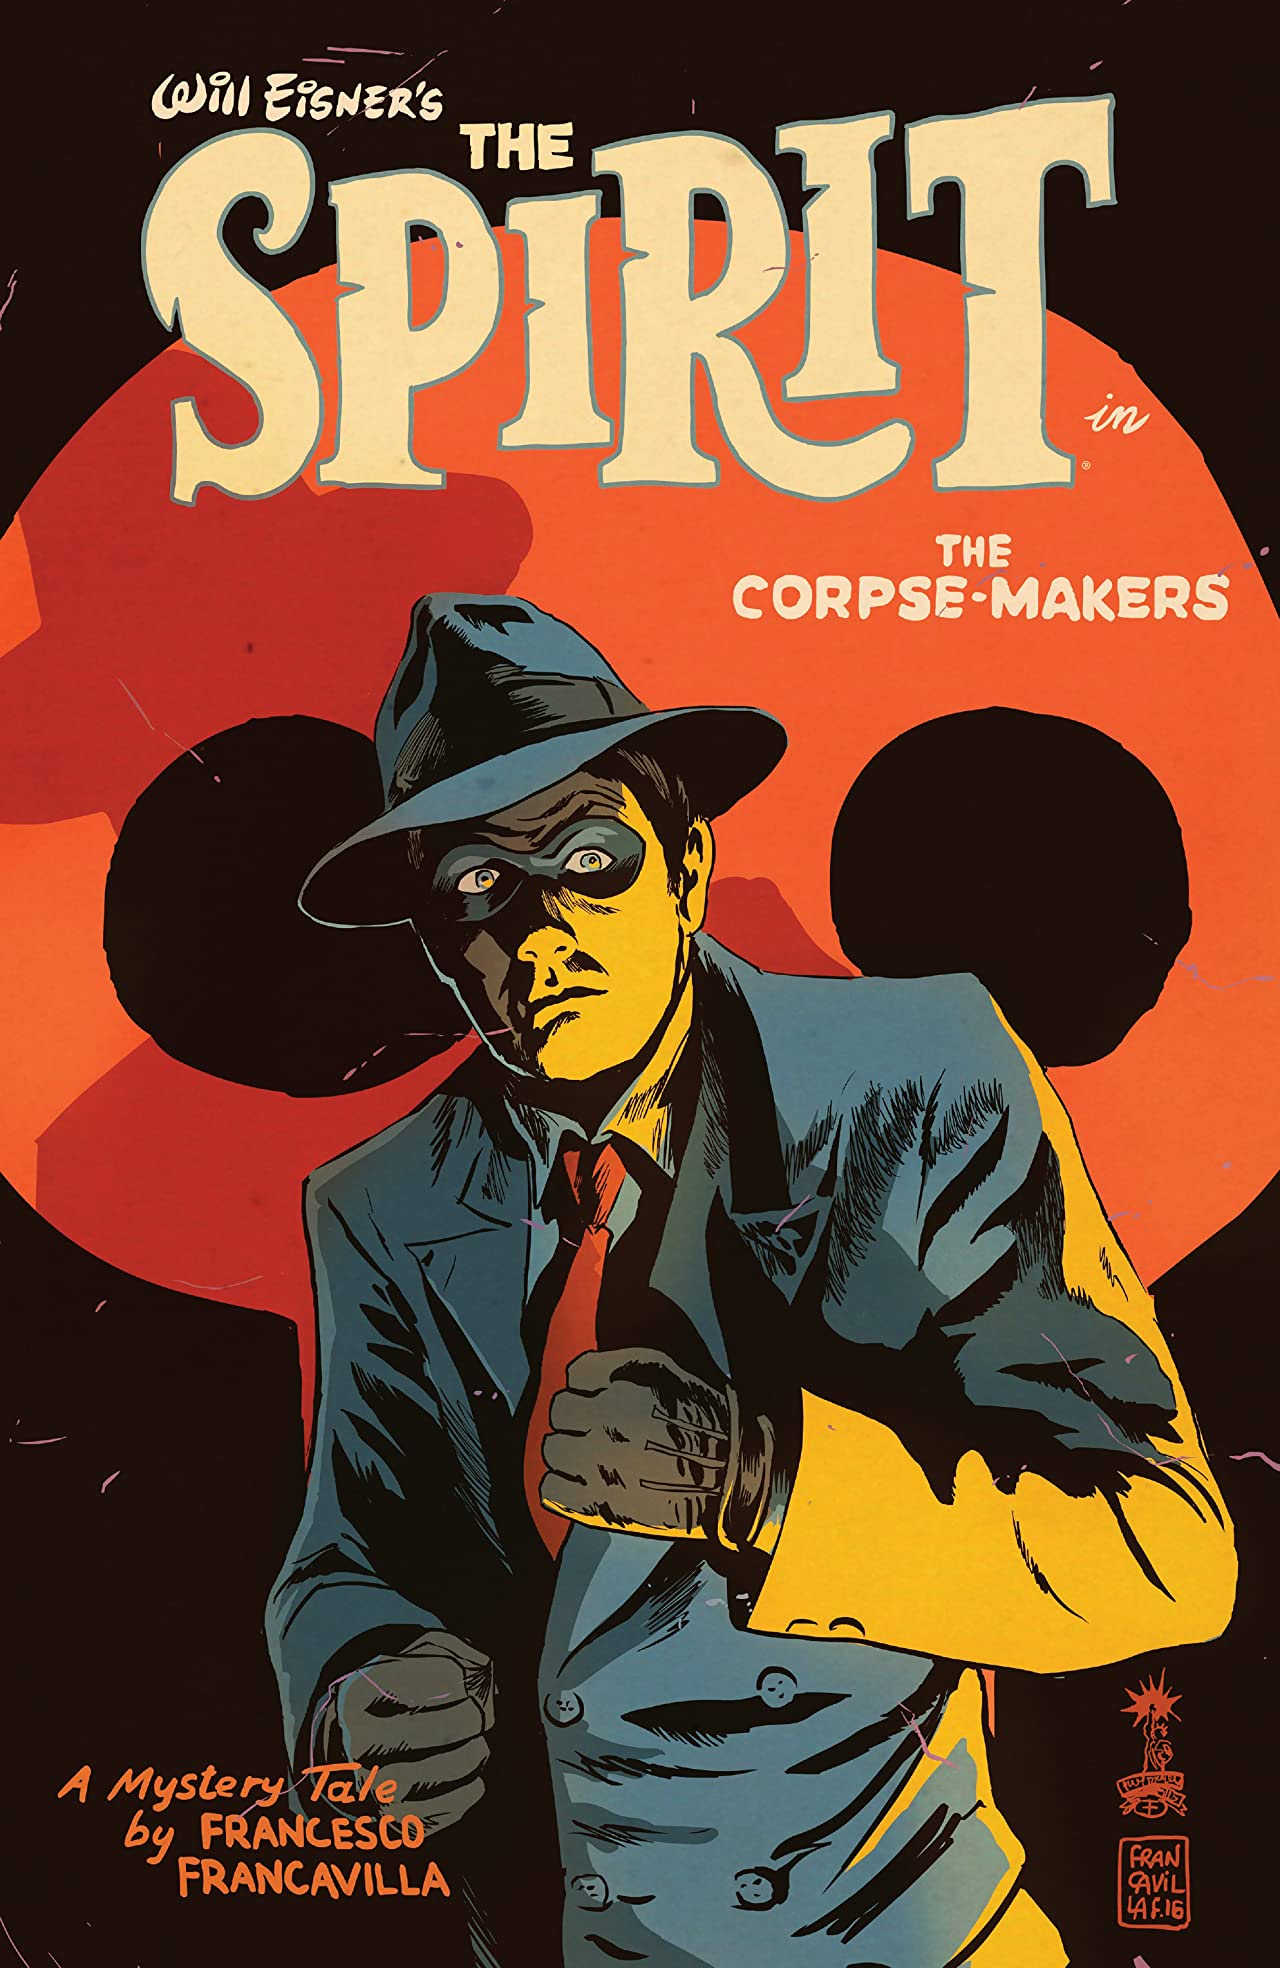 Will Eisner's The Spirit: The Corpse-Makers #1